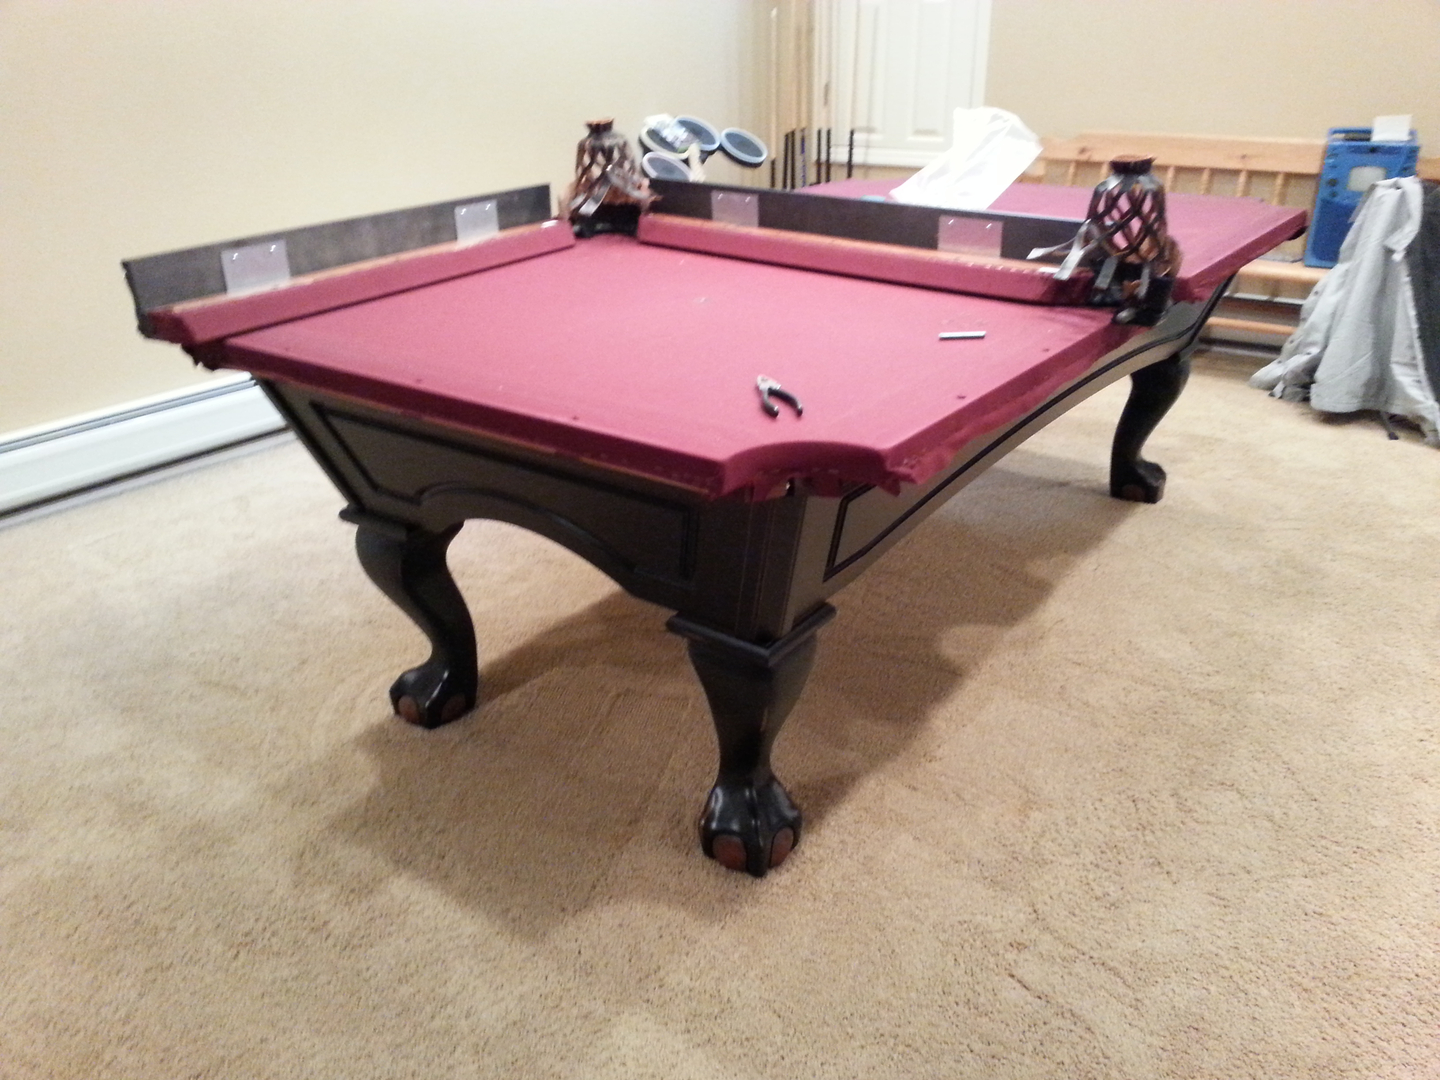 Service Photo Gallery - Pool table service nj